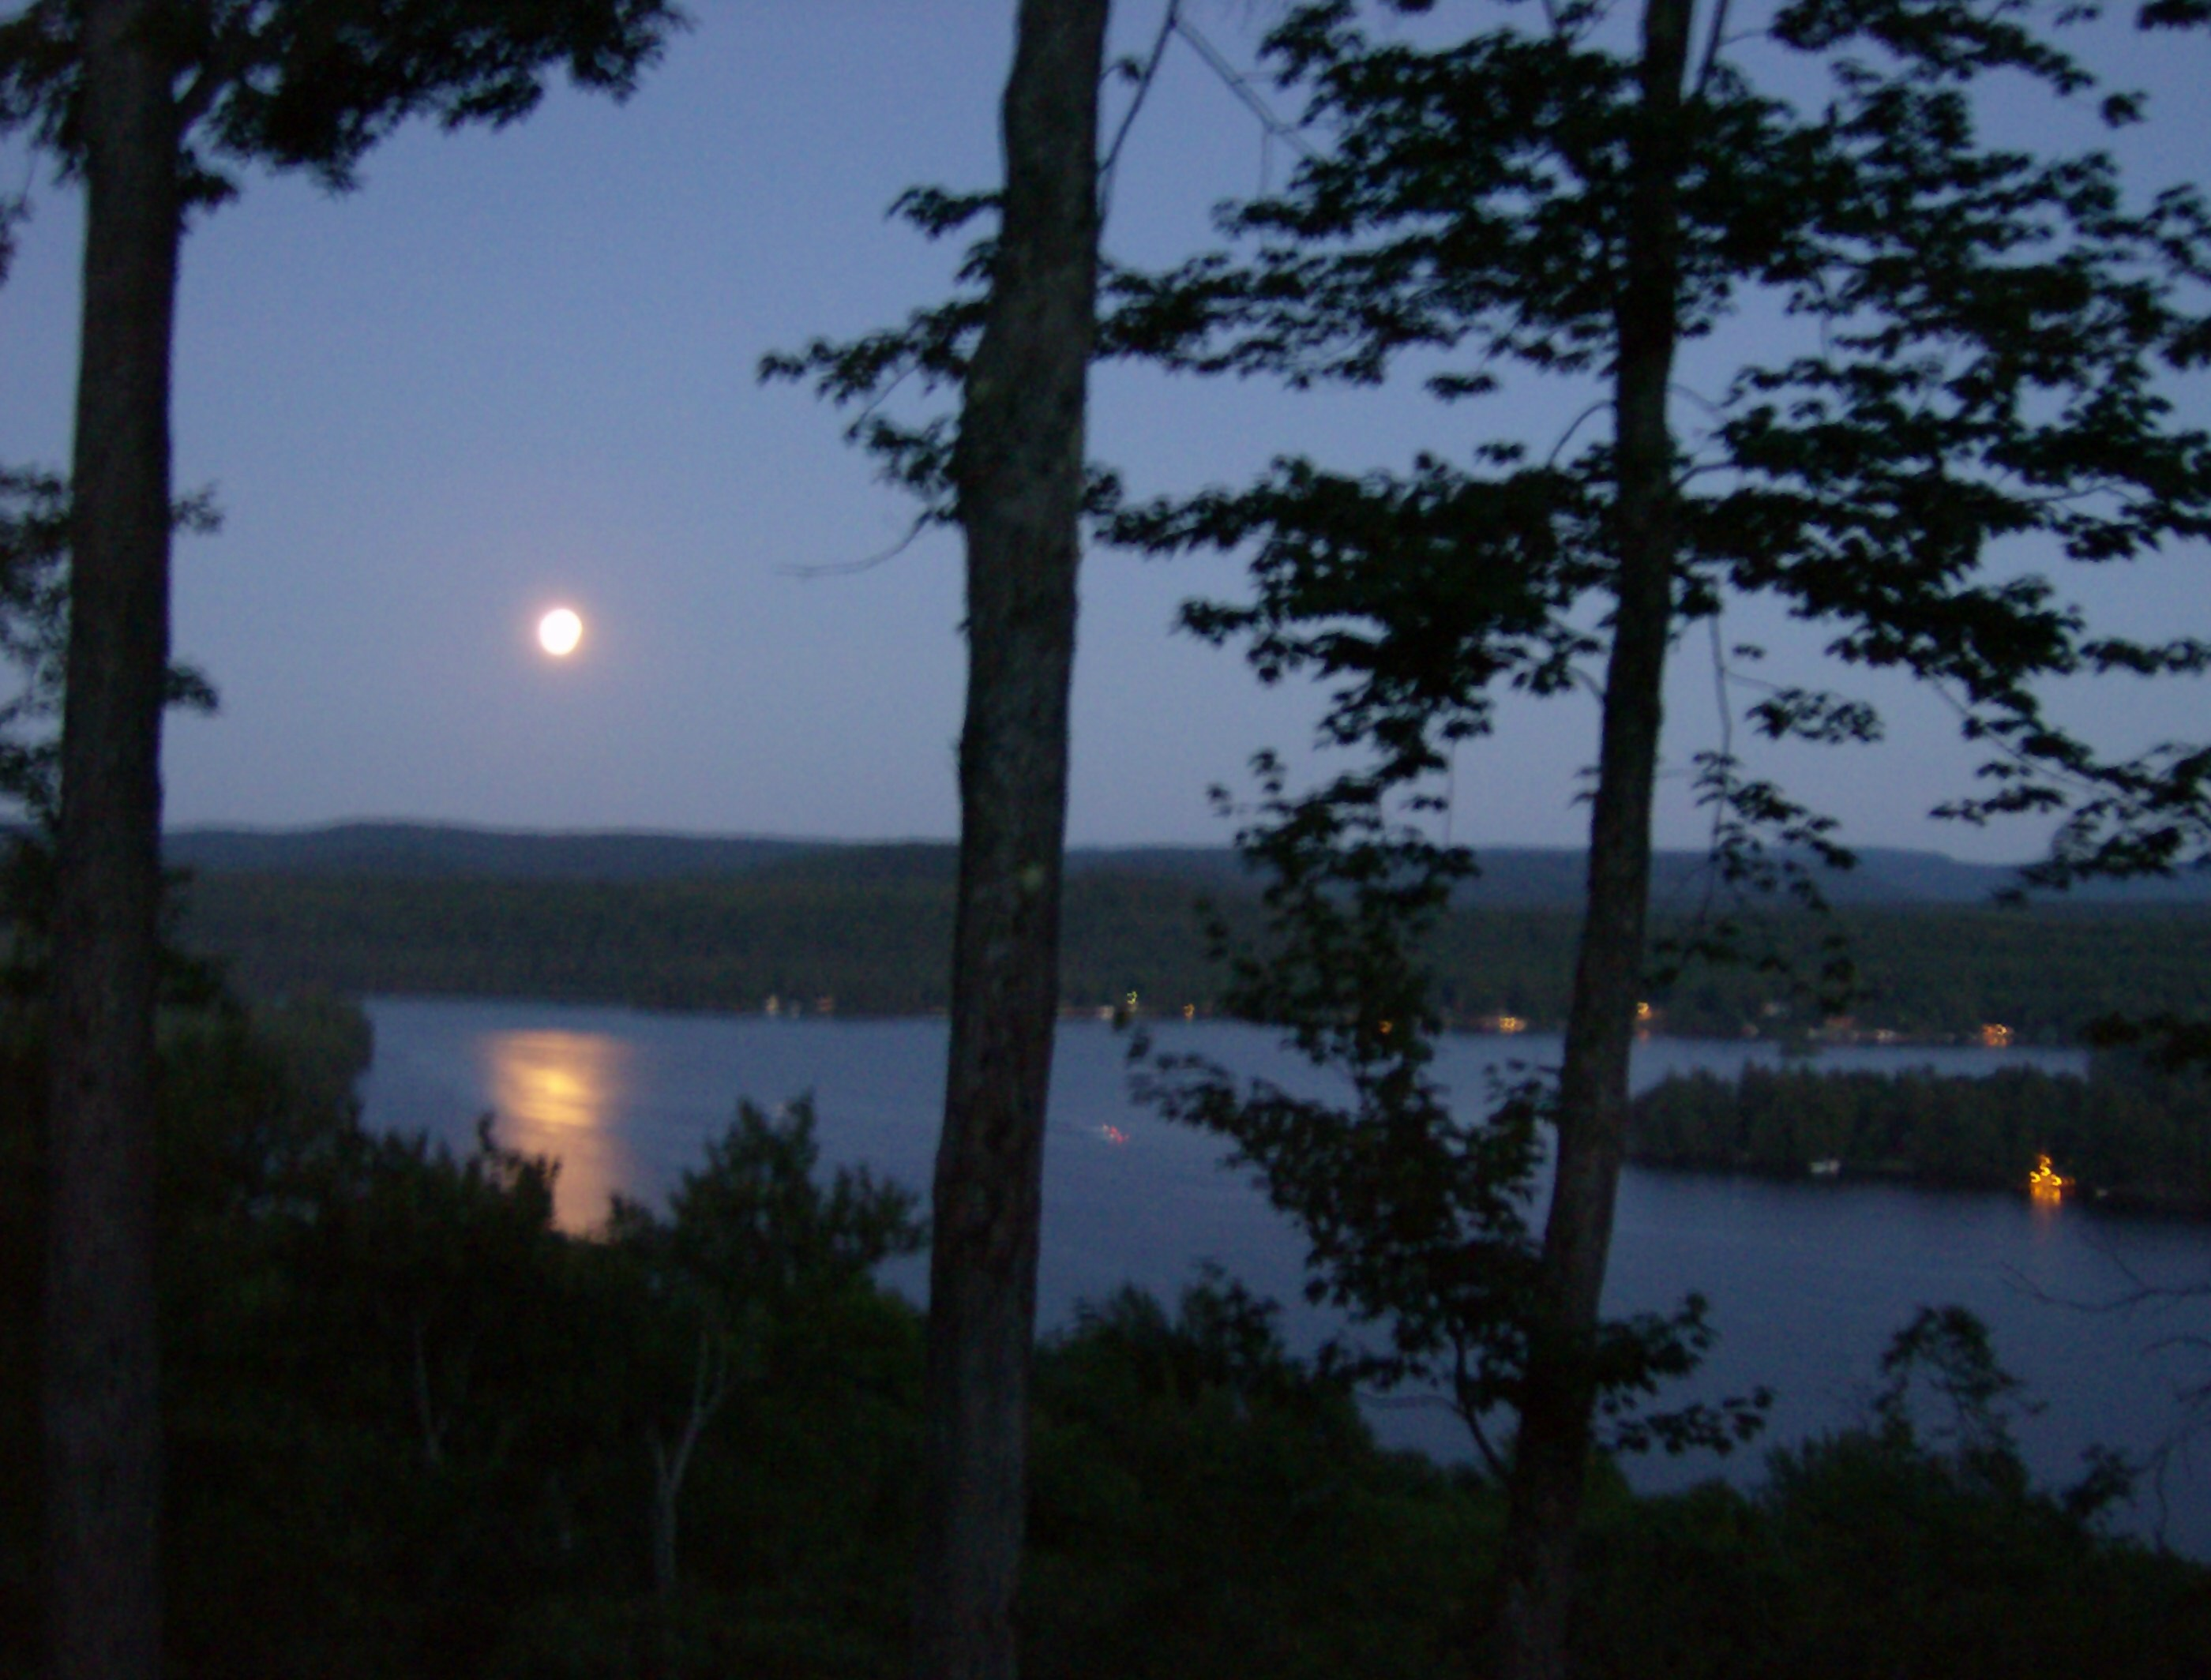 old_forge_adirondack_lvl_moonlite.jpg